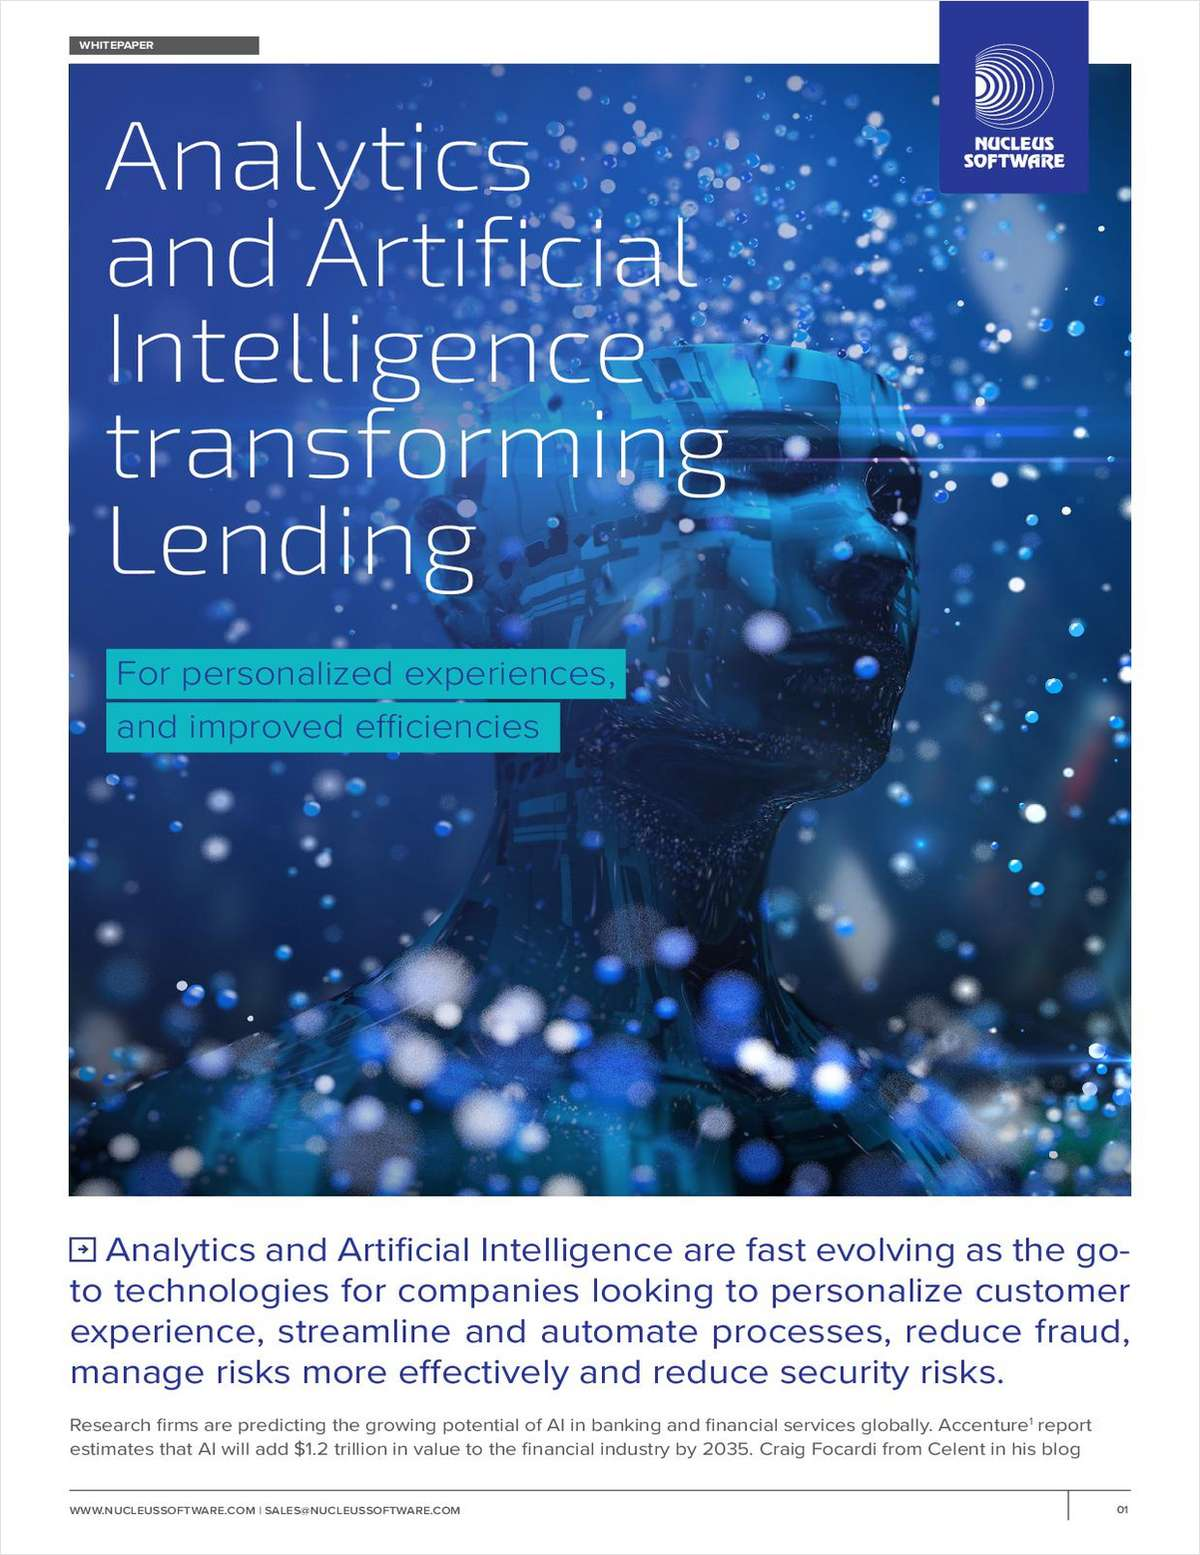 Analytics and Artificial Intelligence Transforming Lending